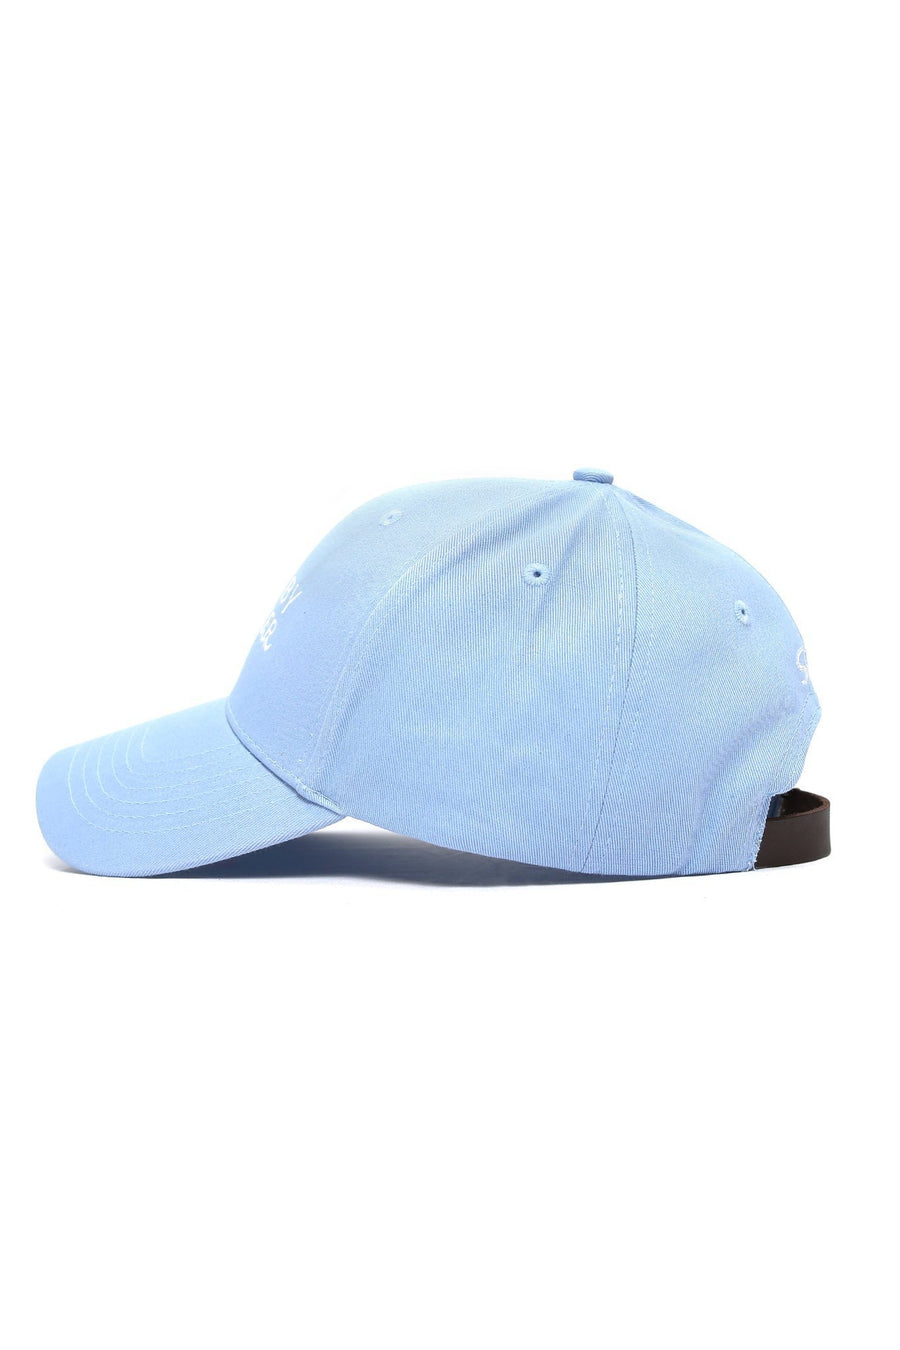 Born By Water Waves Cap - Light Blue - Shore